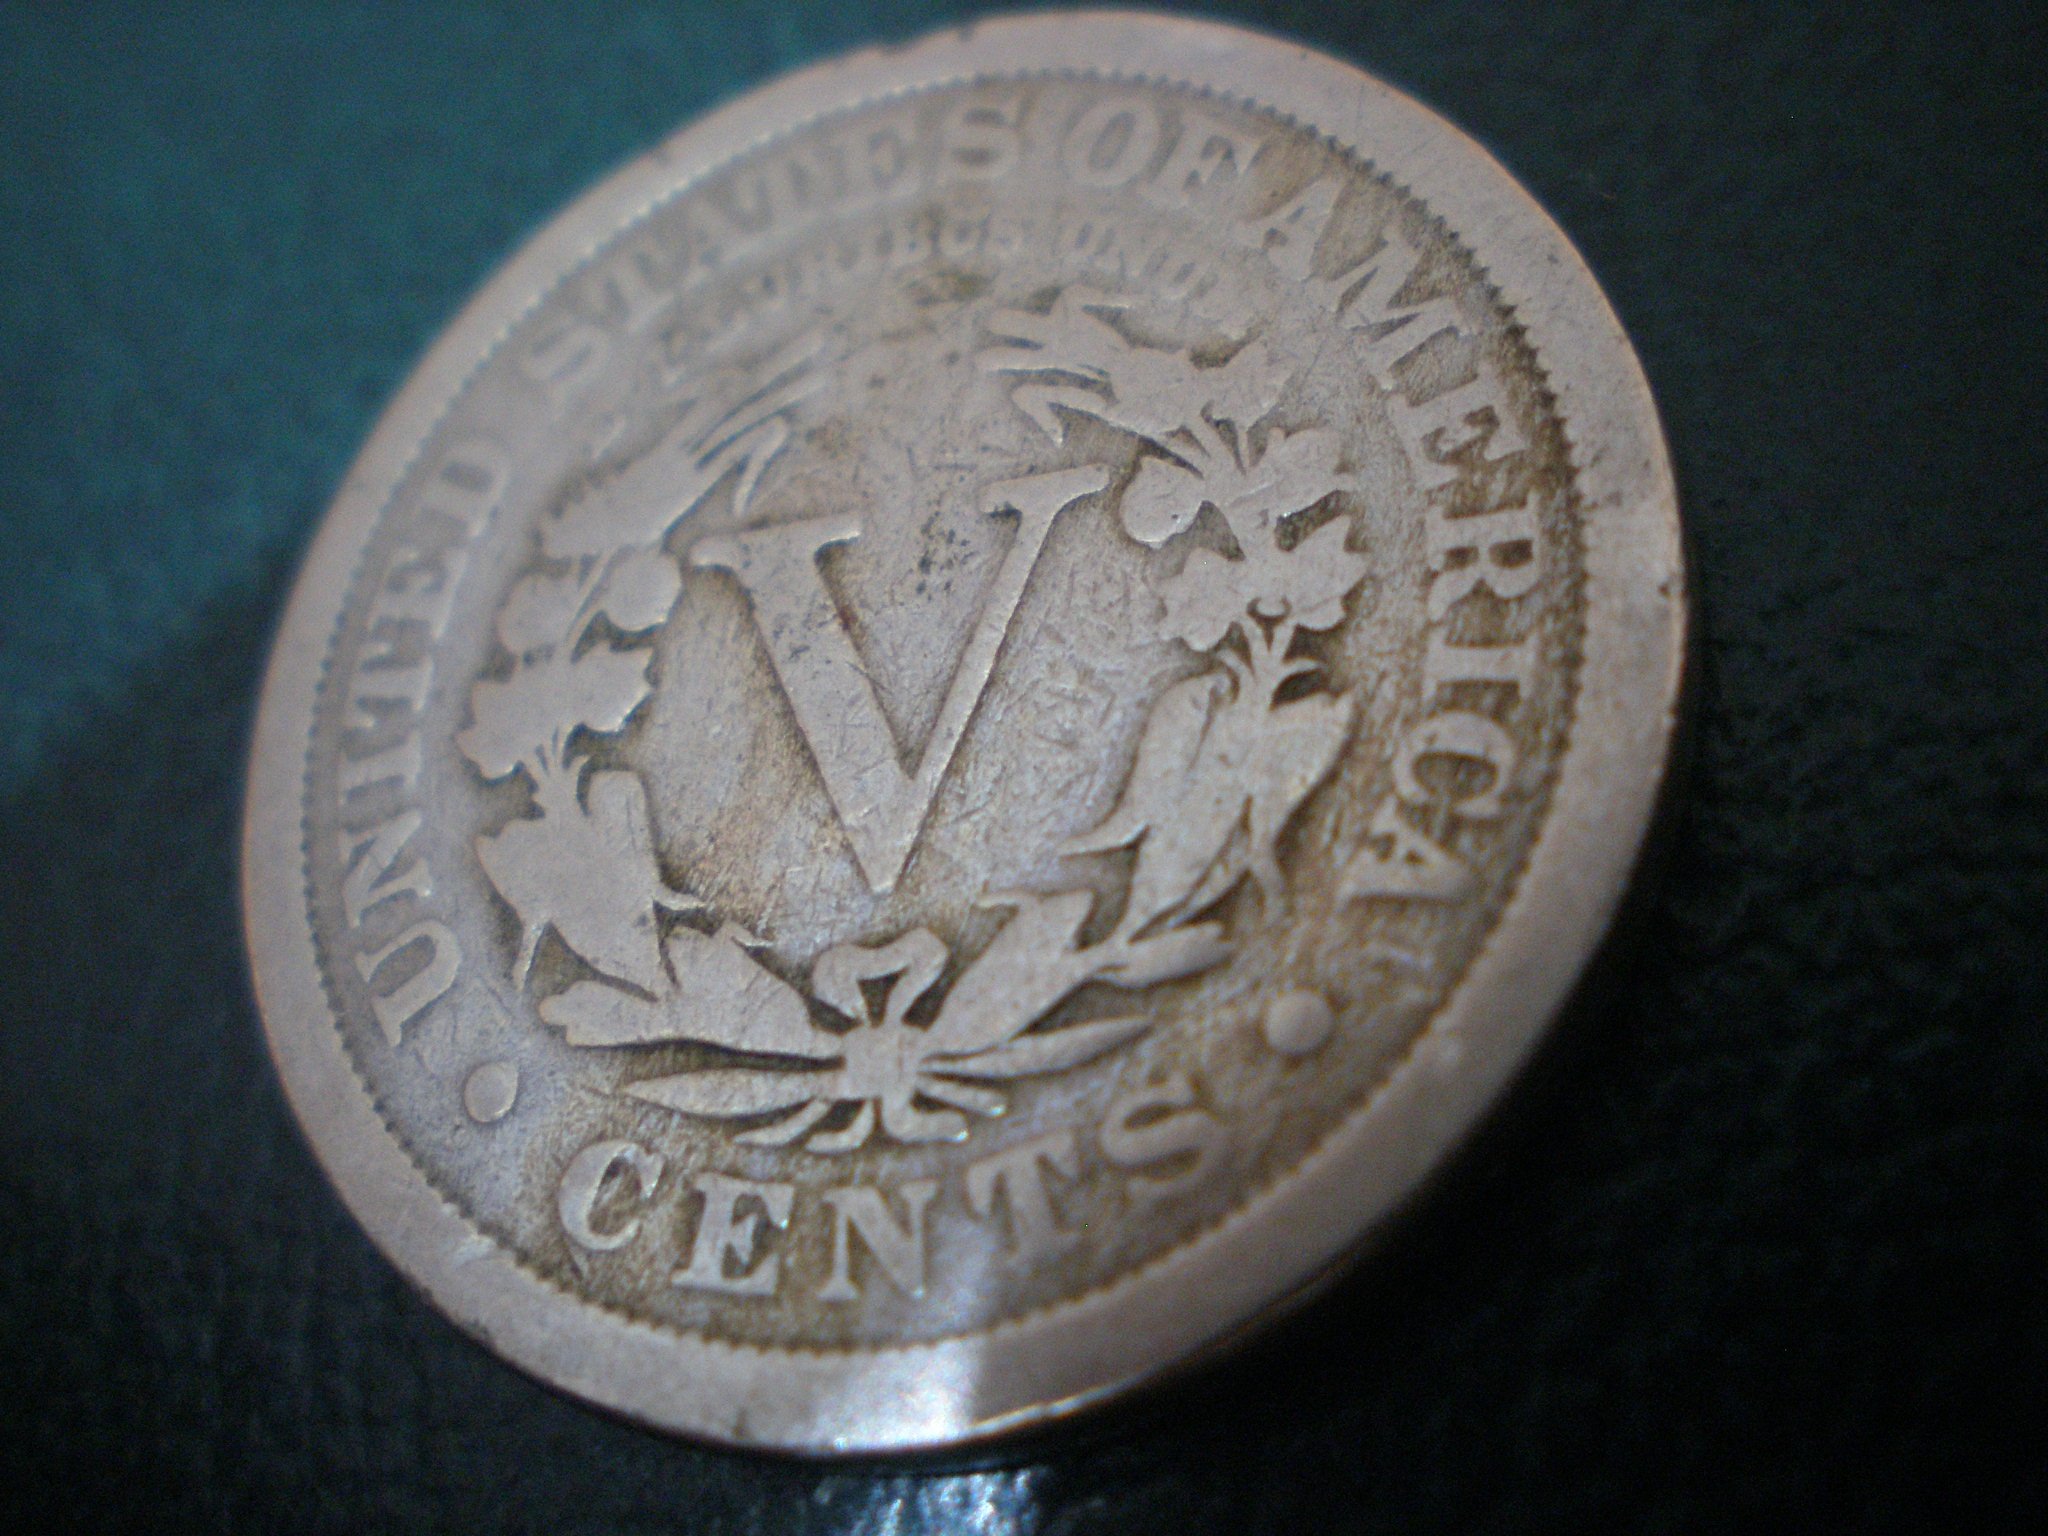 Contraversial Usa Nickels V Cent Coins